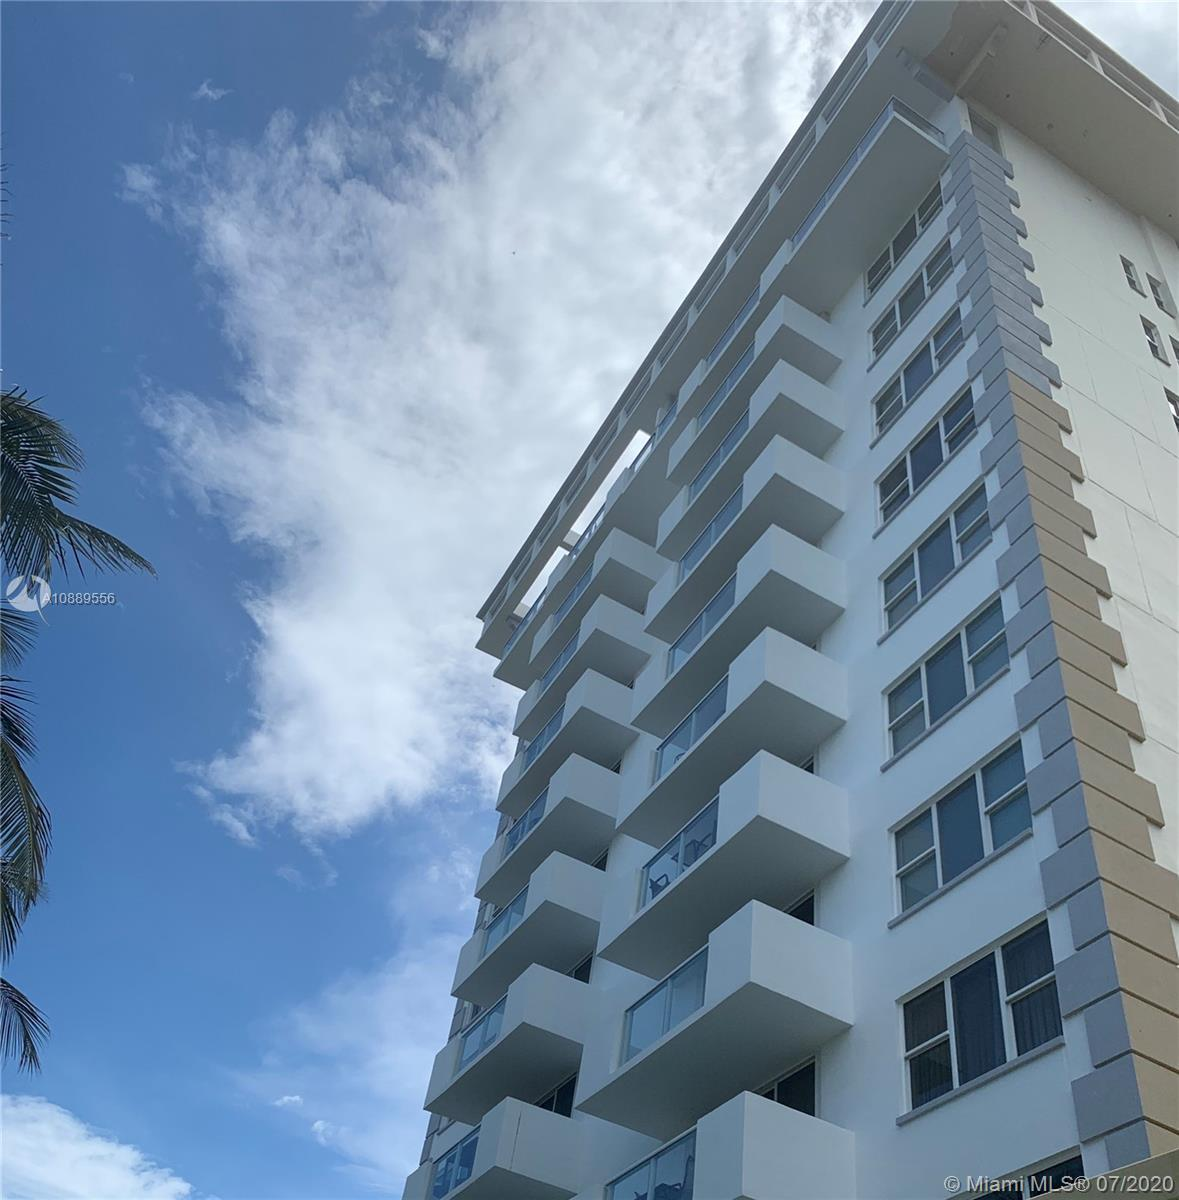 Escape to this  ocean front pad featuring  a 1 bedroom plus den with 2 baths.  1050 square feet of l